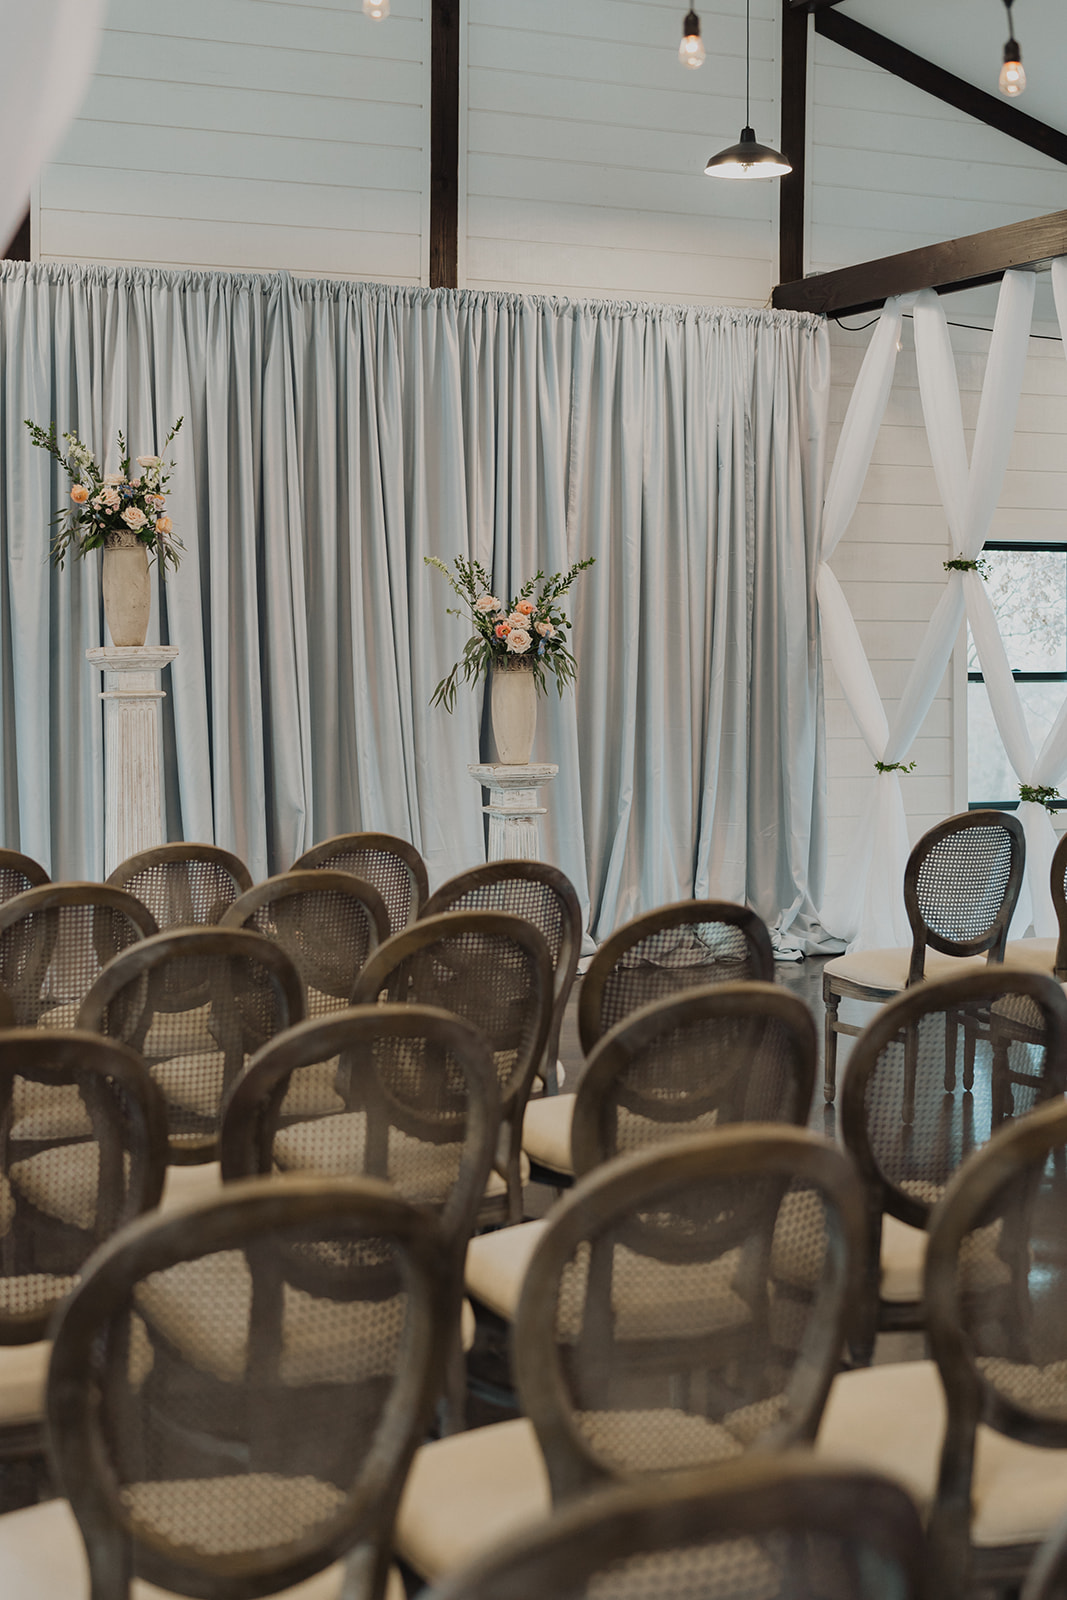 Indoor Ceremony Tulsa Wedding Venue Dream Point Ranch 1.jpg